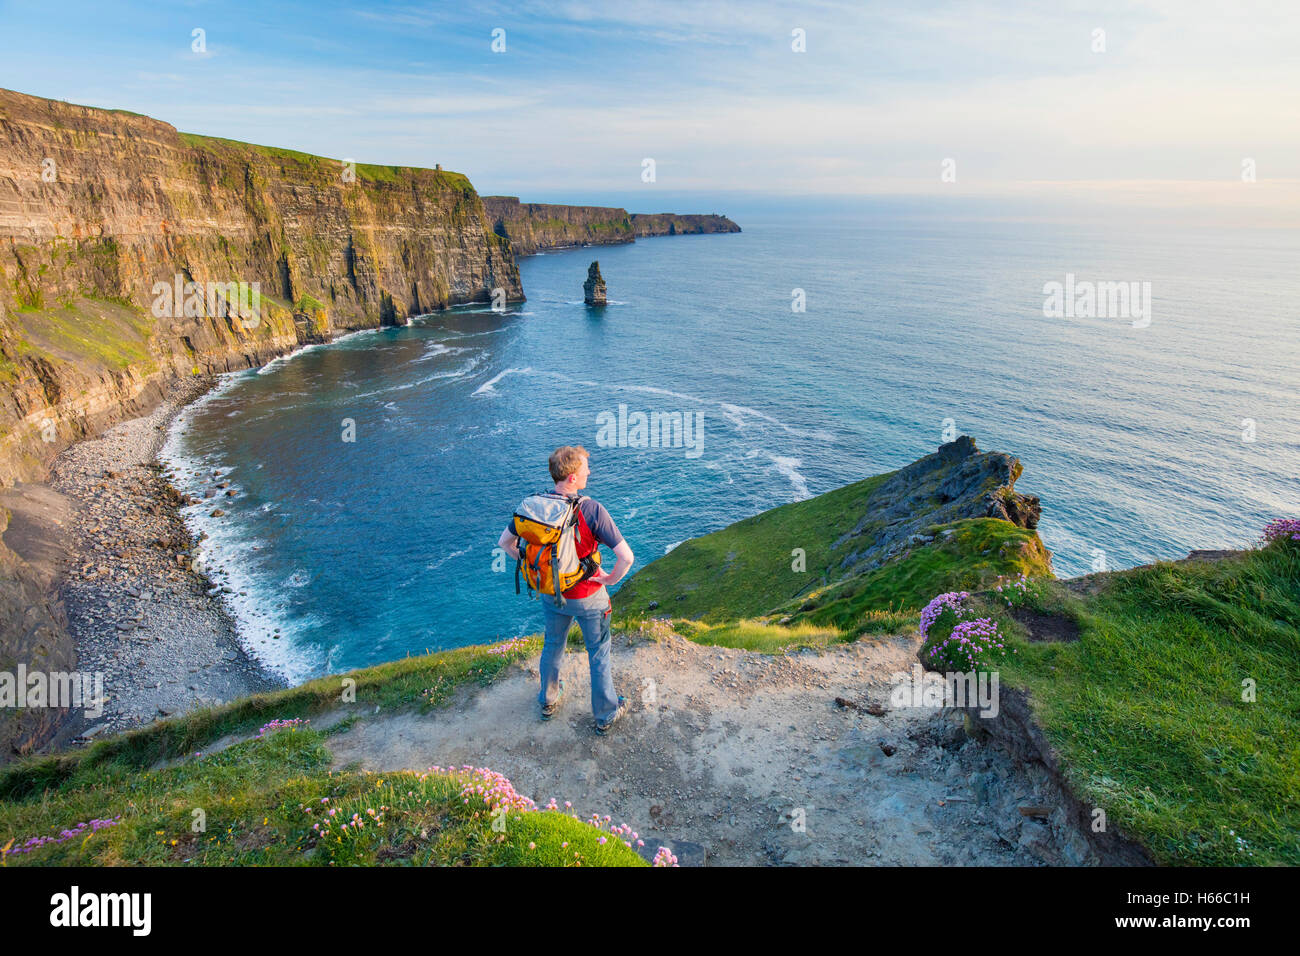 Walker at the Cliffs of Moher, County Clare, Ireland. - Stock Image